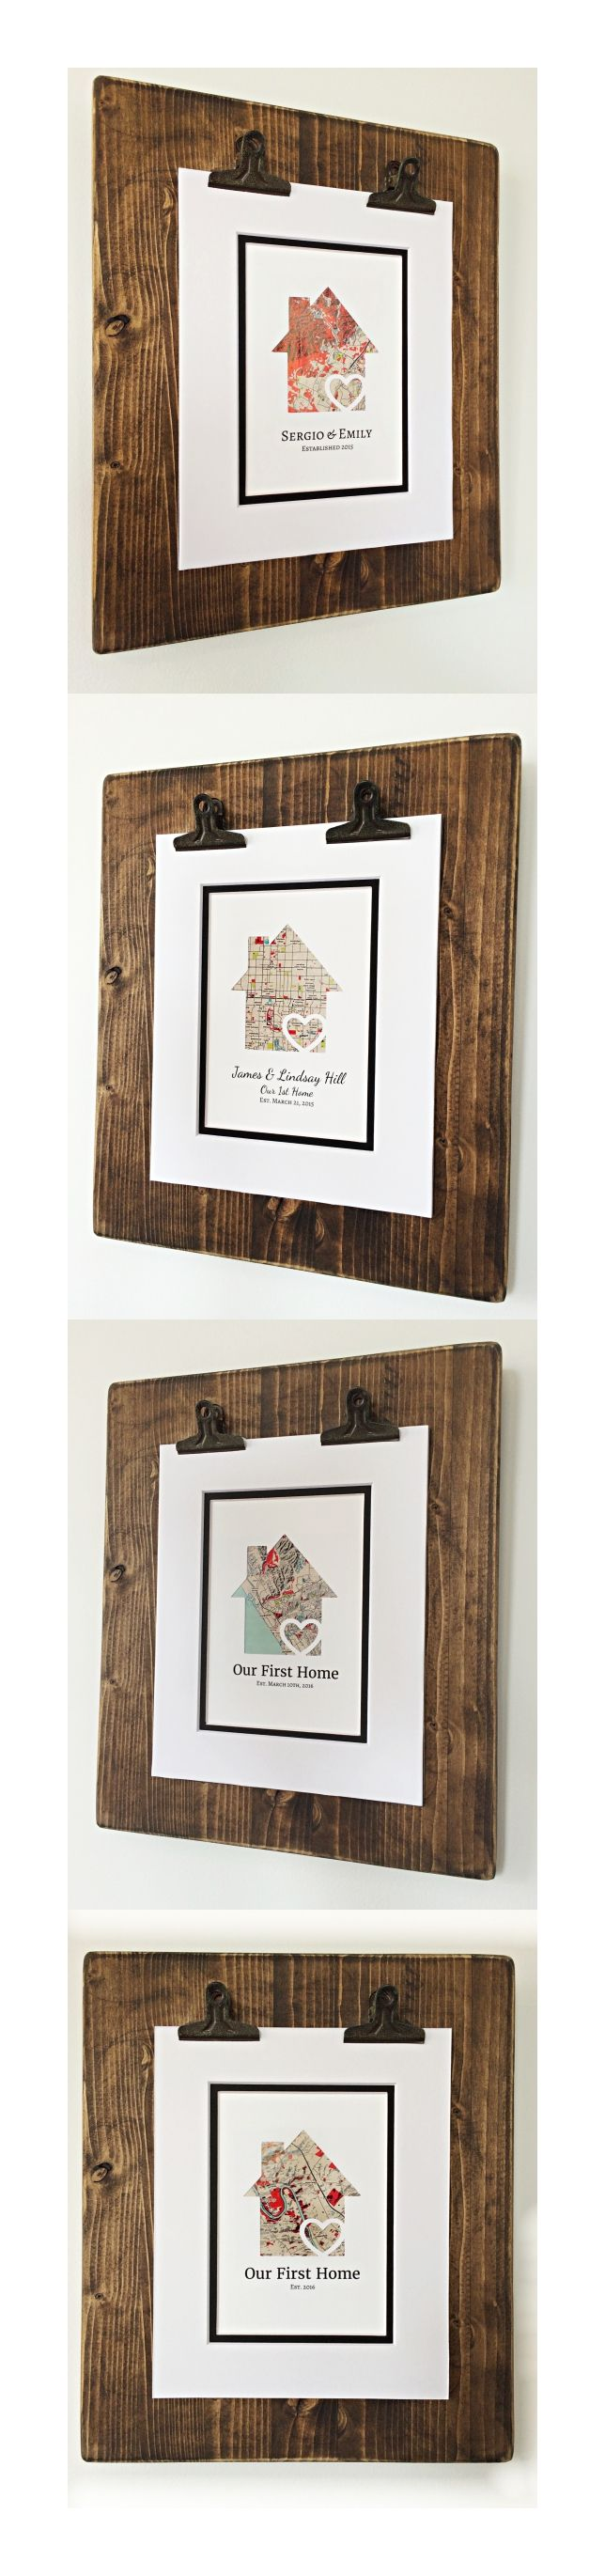 Home interiors and gifts framed art - Our First Home Housewarming Gift Or Realtor Closing Gifts For A Client